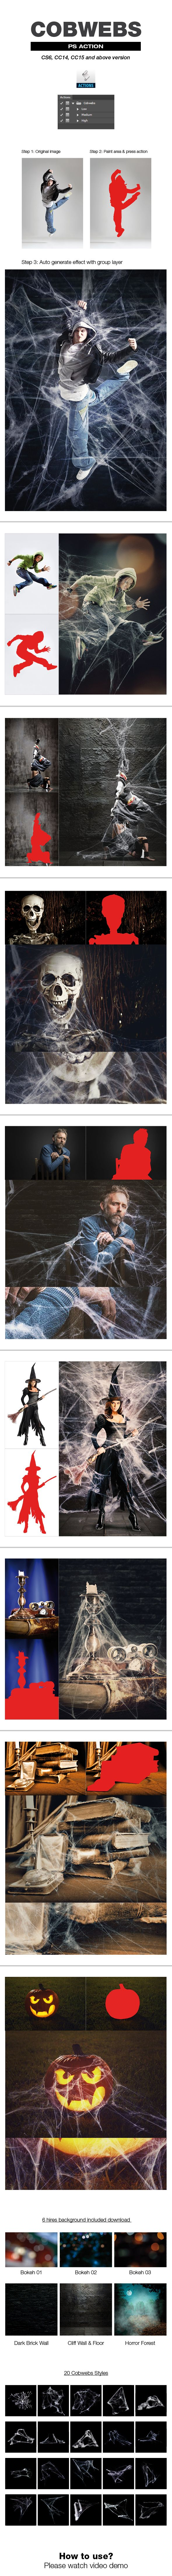 Cobwebs #image #background  • Download here → https://graphicriver.net/item/cobwebs/20659295?ref=pxcr